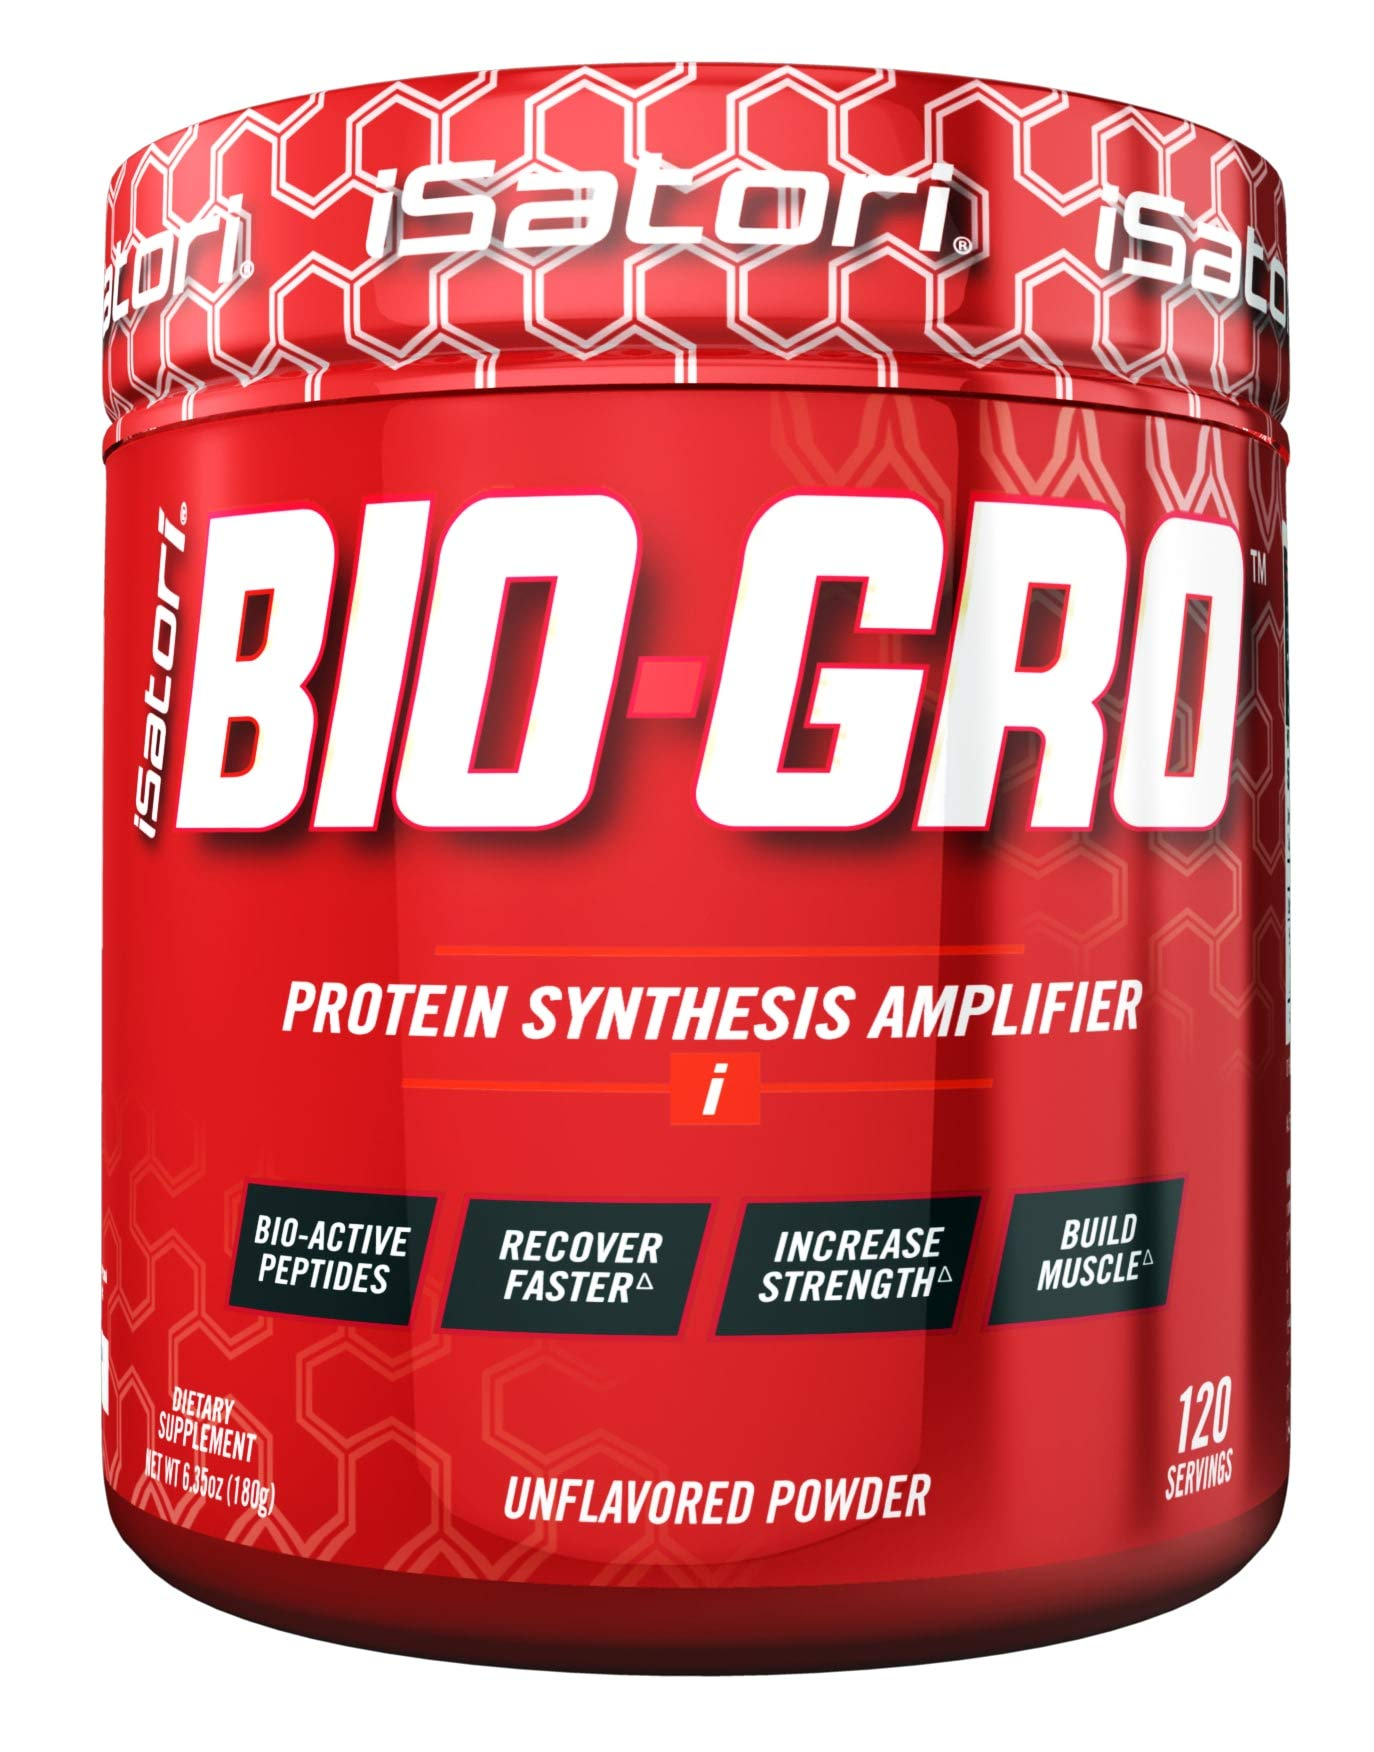 iSatori Bio-GRO Protein Synthesis Amplifier - Designed to Build Lean Muscle, Speed Recovery and Increase Strength - Bio-Active Proline-Rich Peptides - Dietary Supplement - Unflavored - 120 Servings